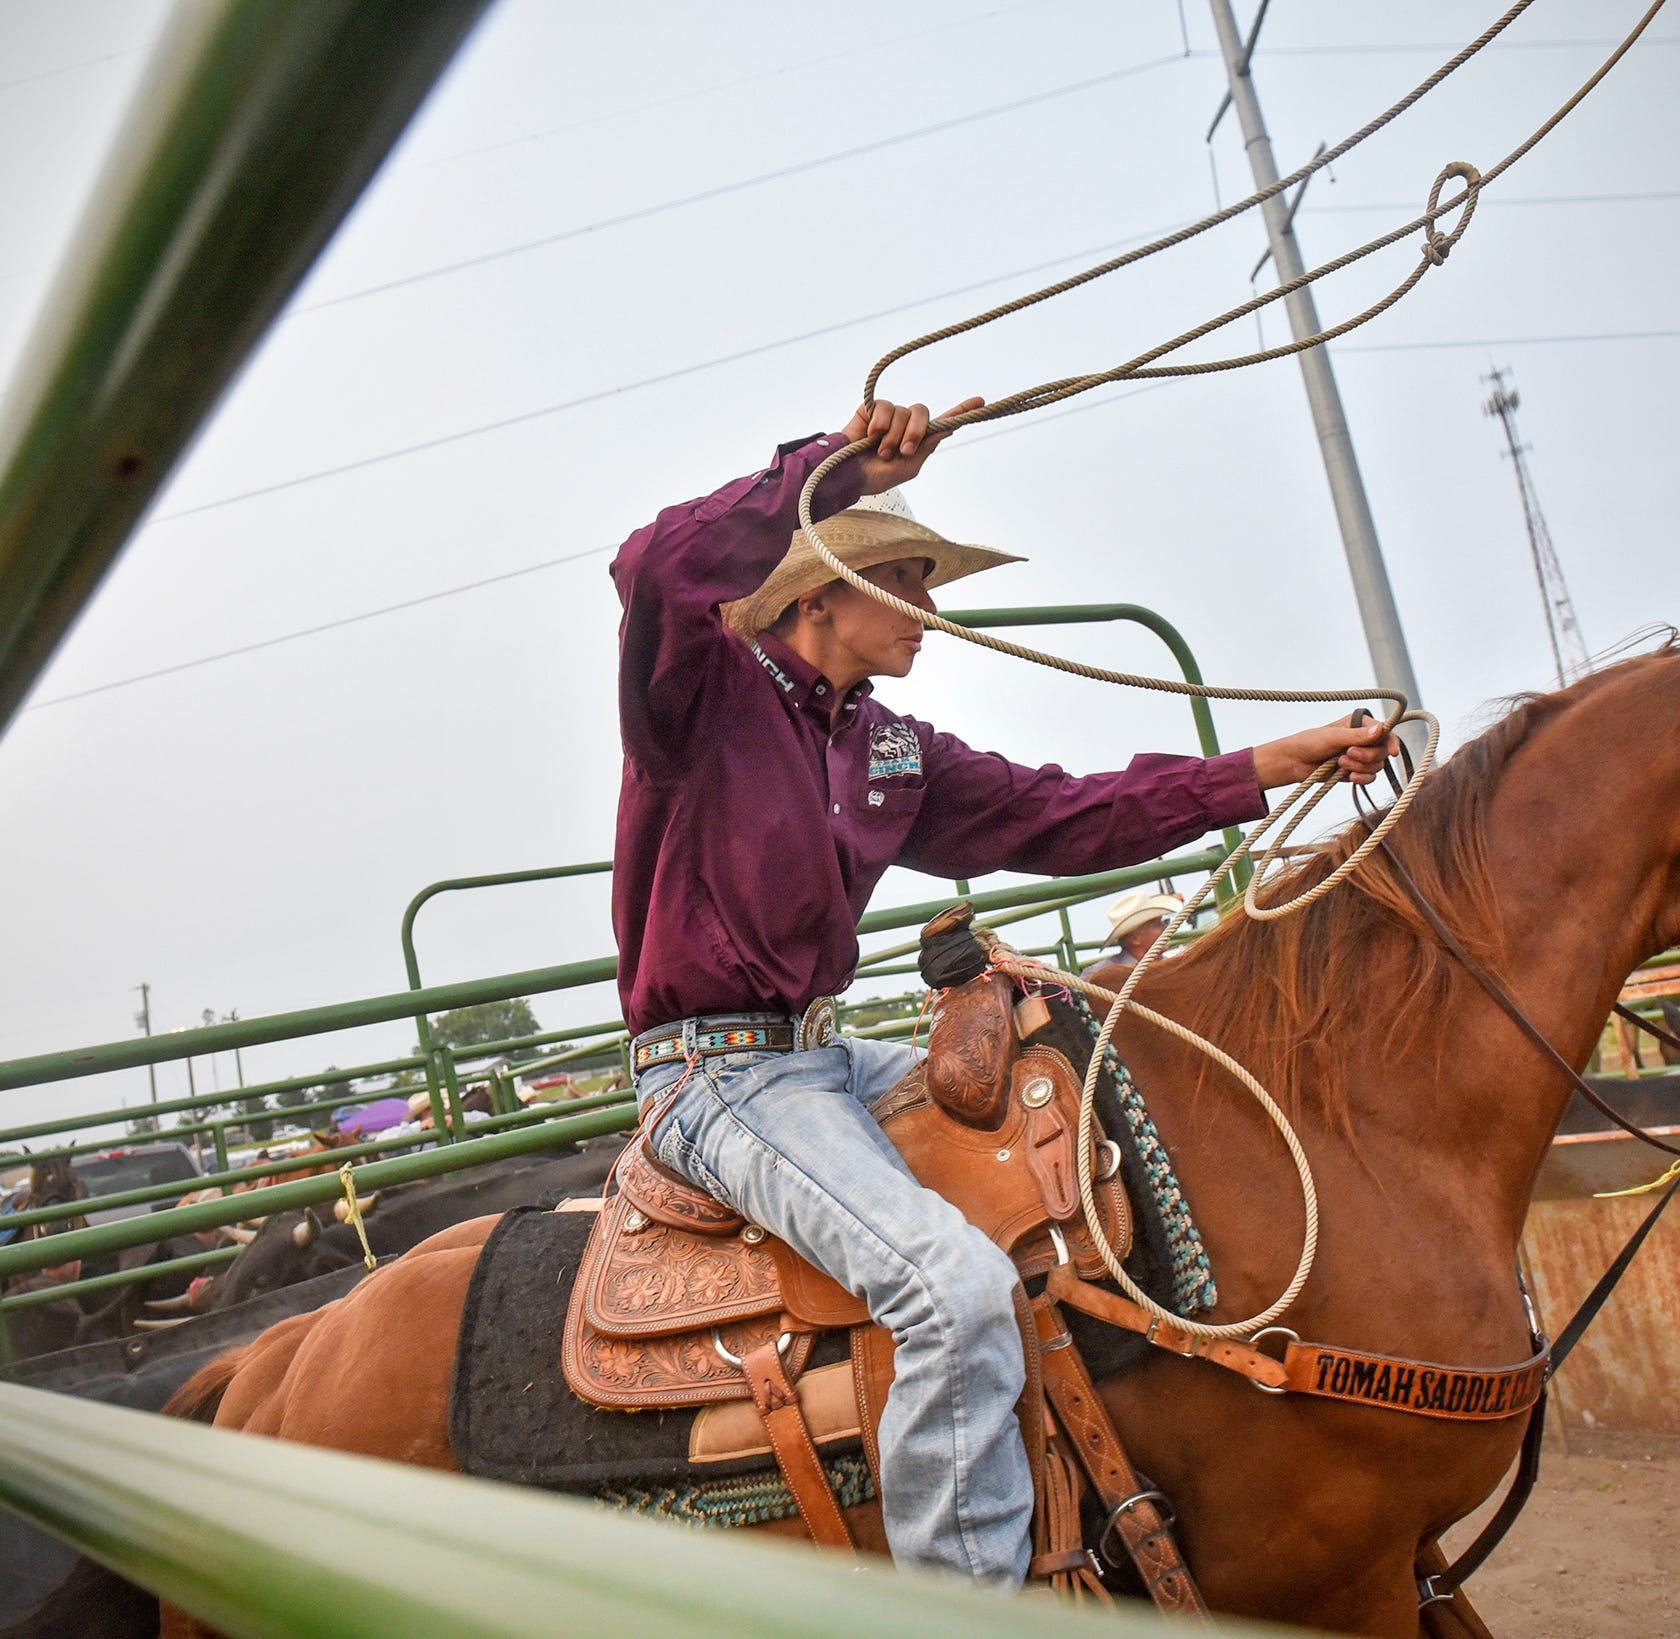 Silver Bullet Saddle Club brings annual rodeo to Clearwater